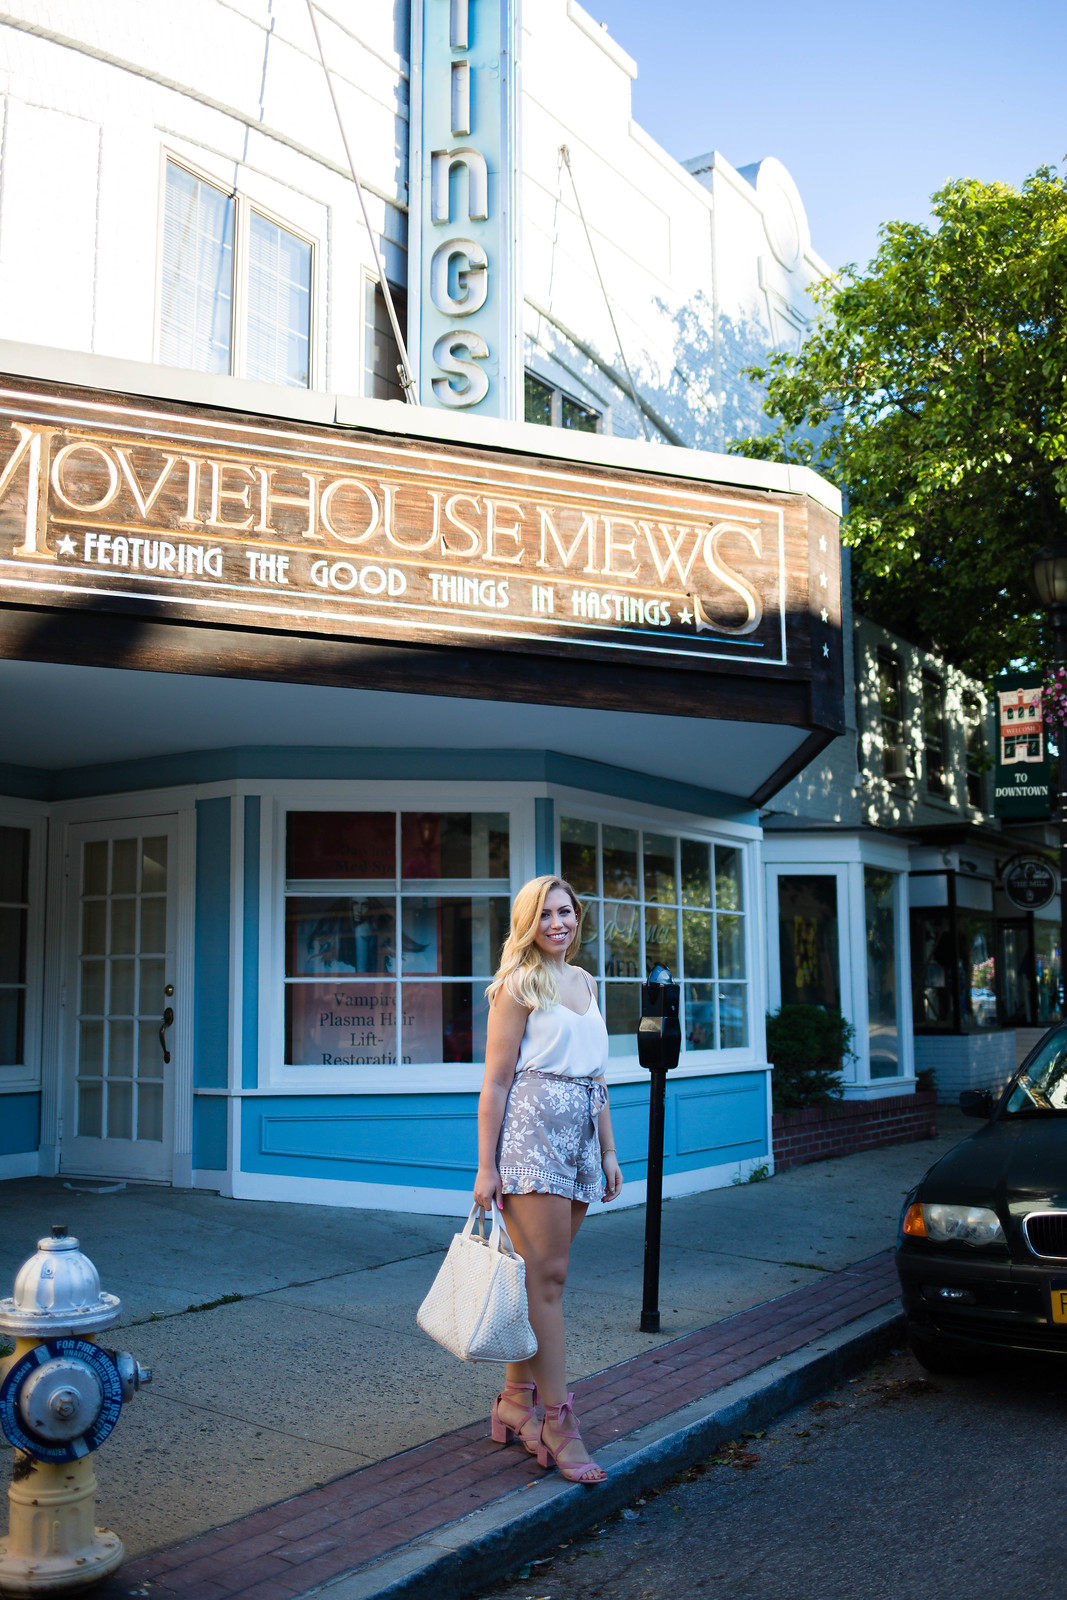 Hastings On Hudson New York Moviehouse Mews Street Style Blogger Jackie Giardina Living After Midnite